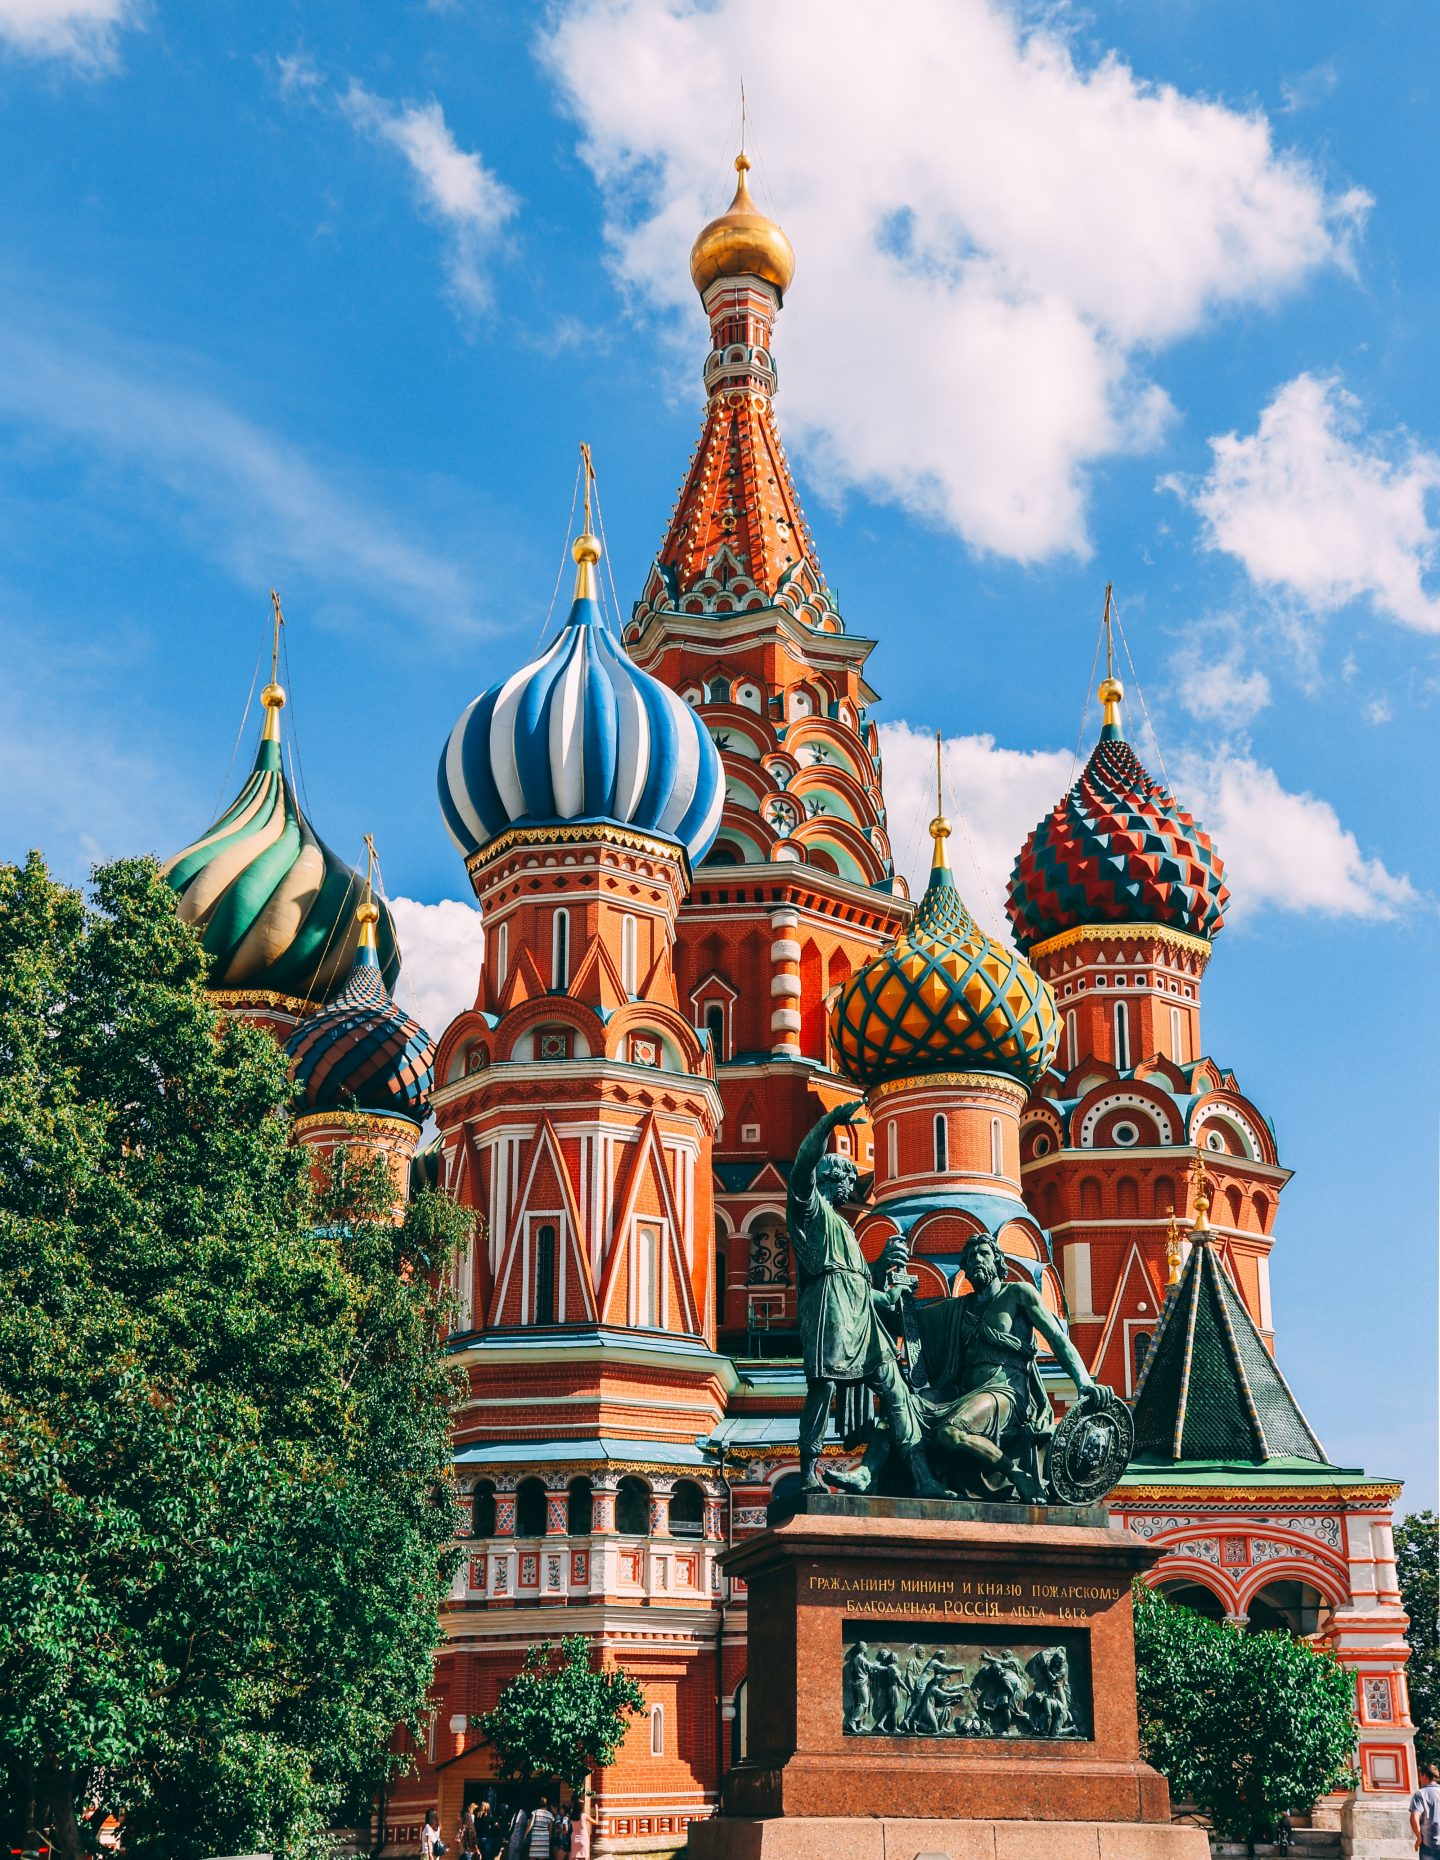 The Top 5 experiences I want to have in Moscow